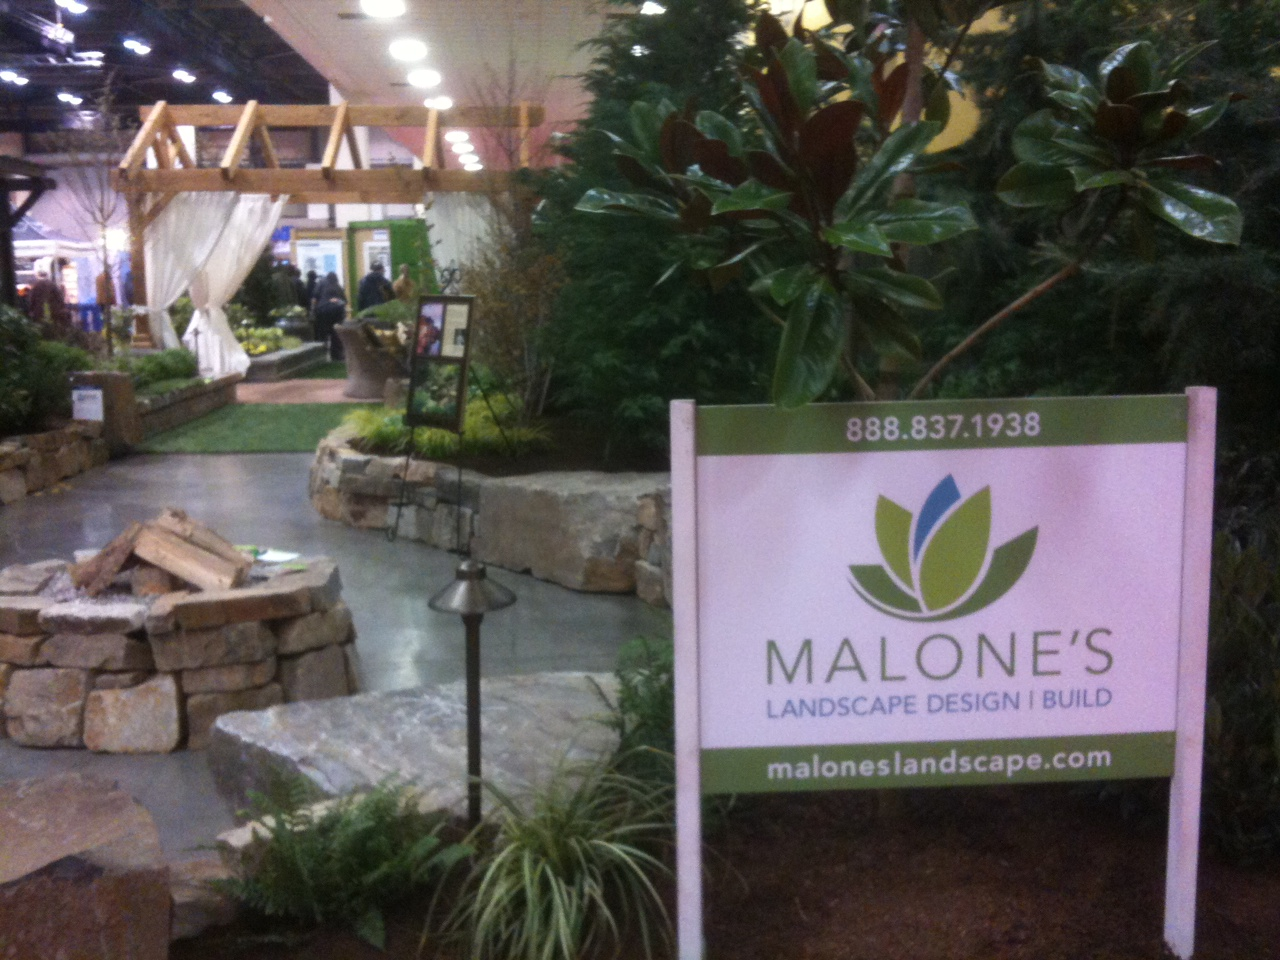 seattle home show february 2012